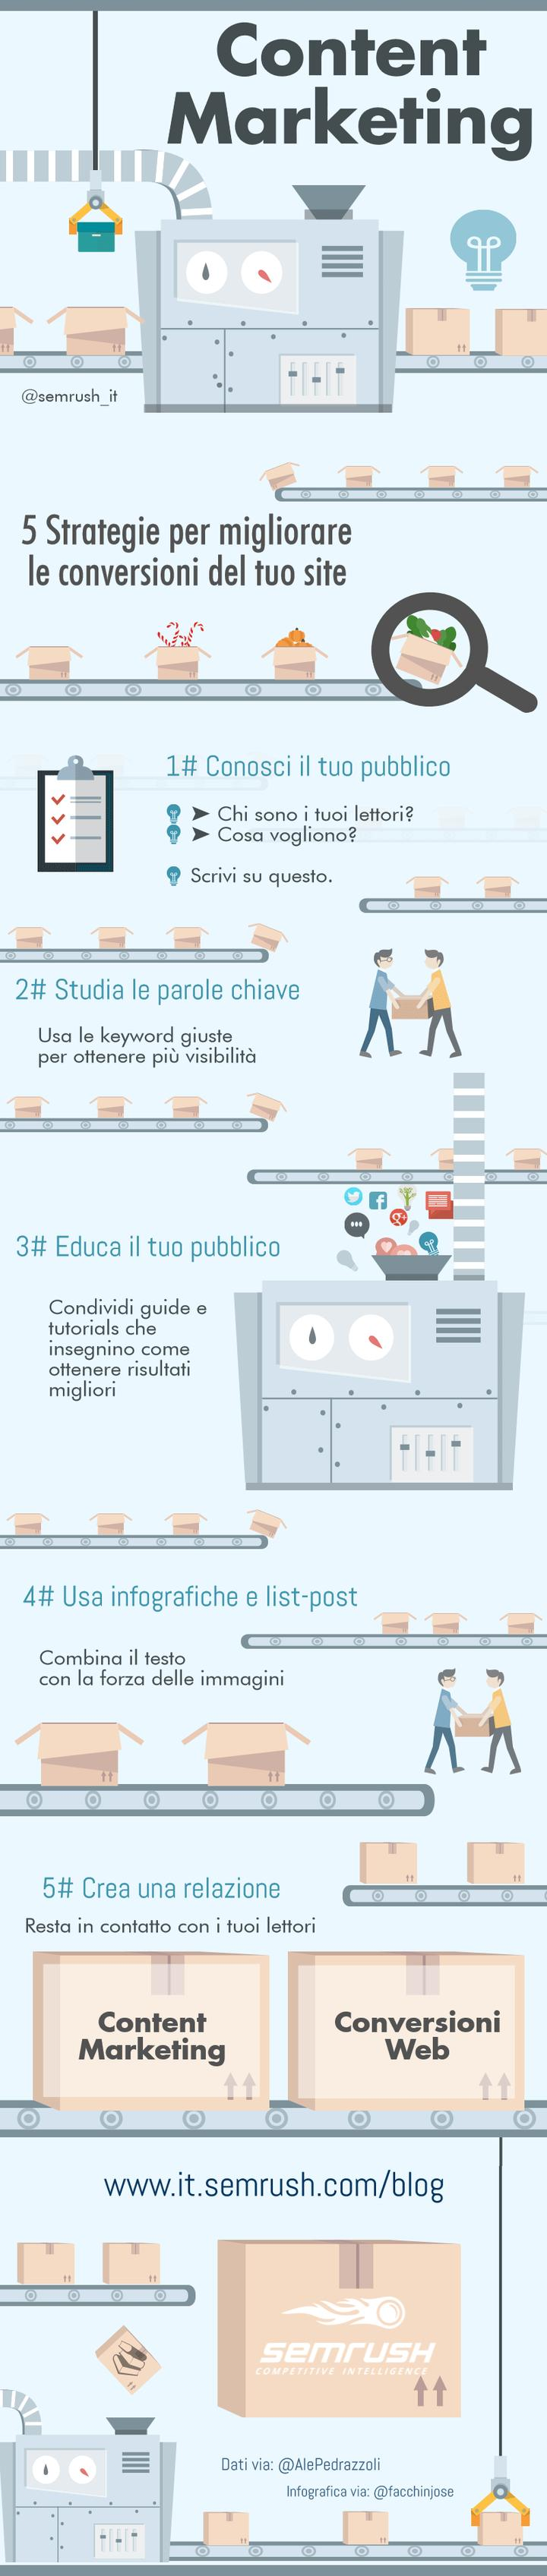 Infografica: Strategie di content marketing